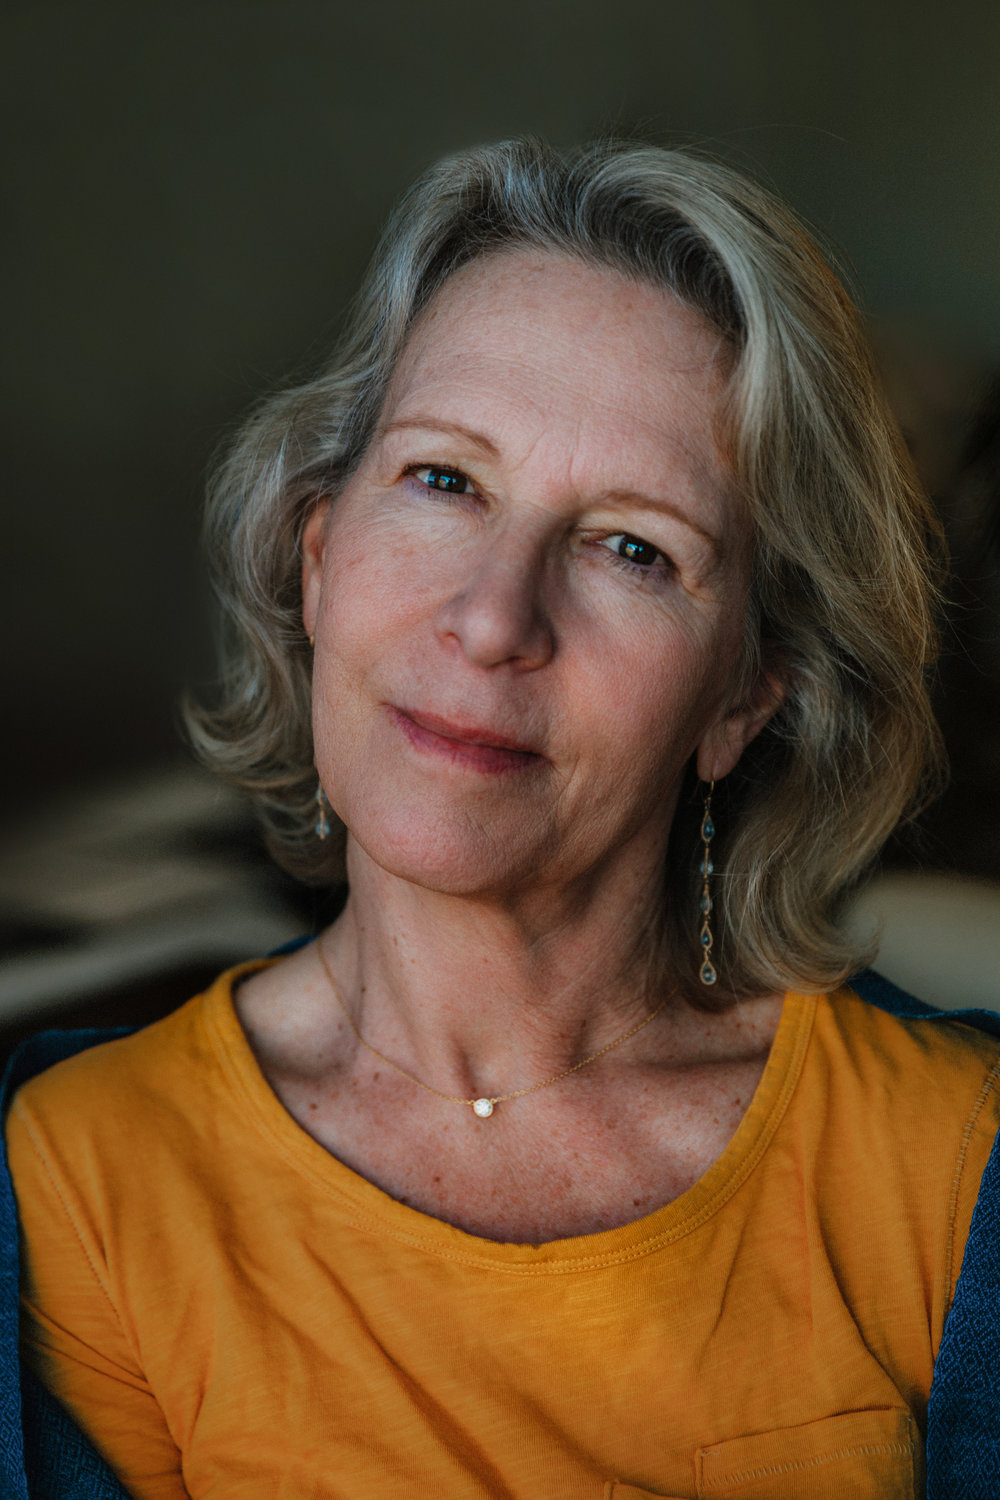 Author and documentary filmmaker Mary Copp